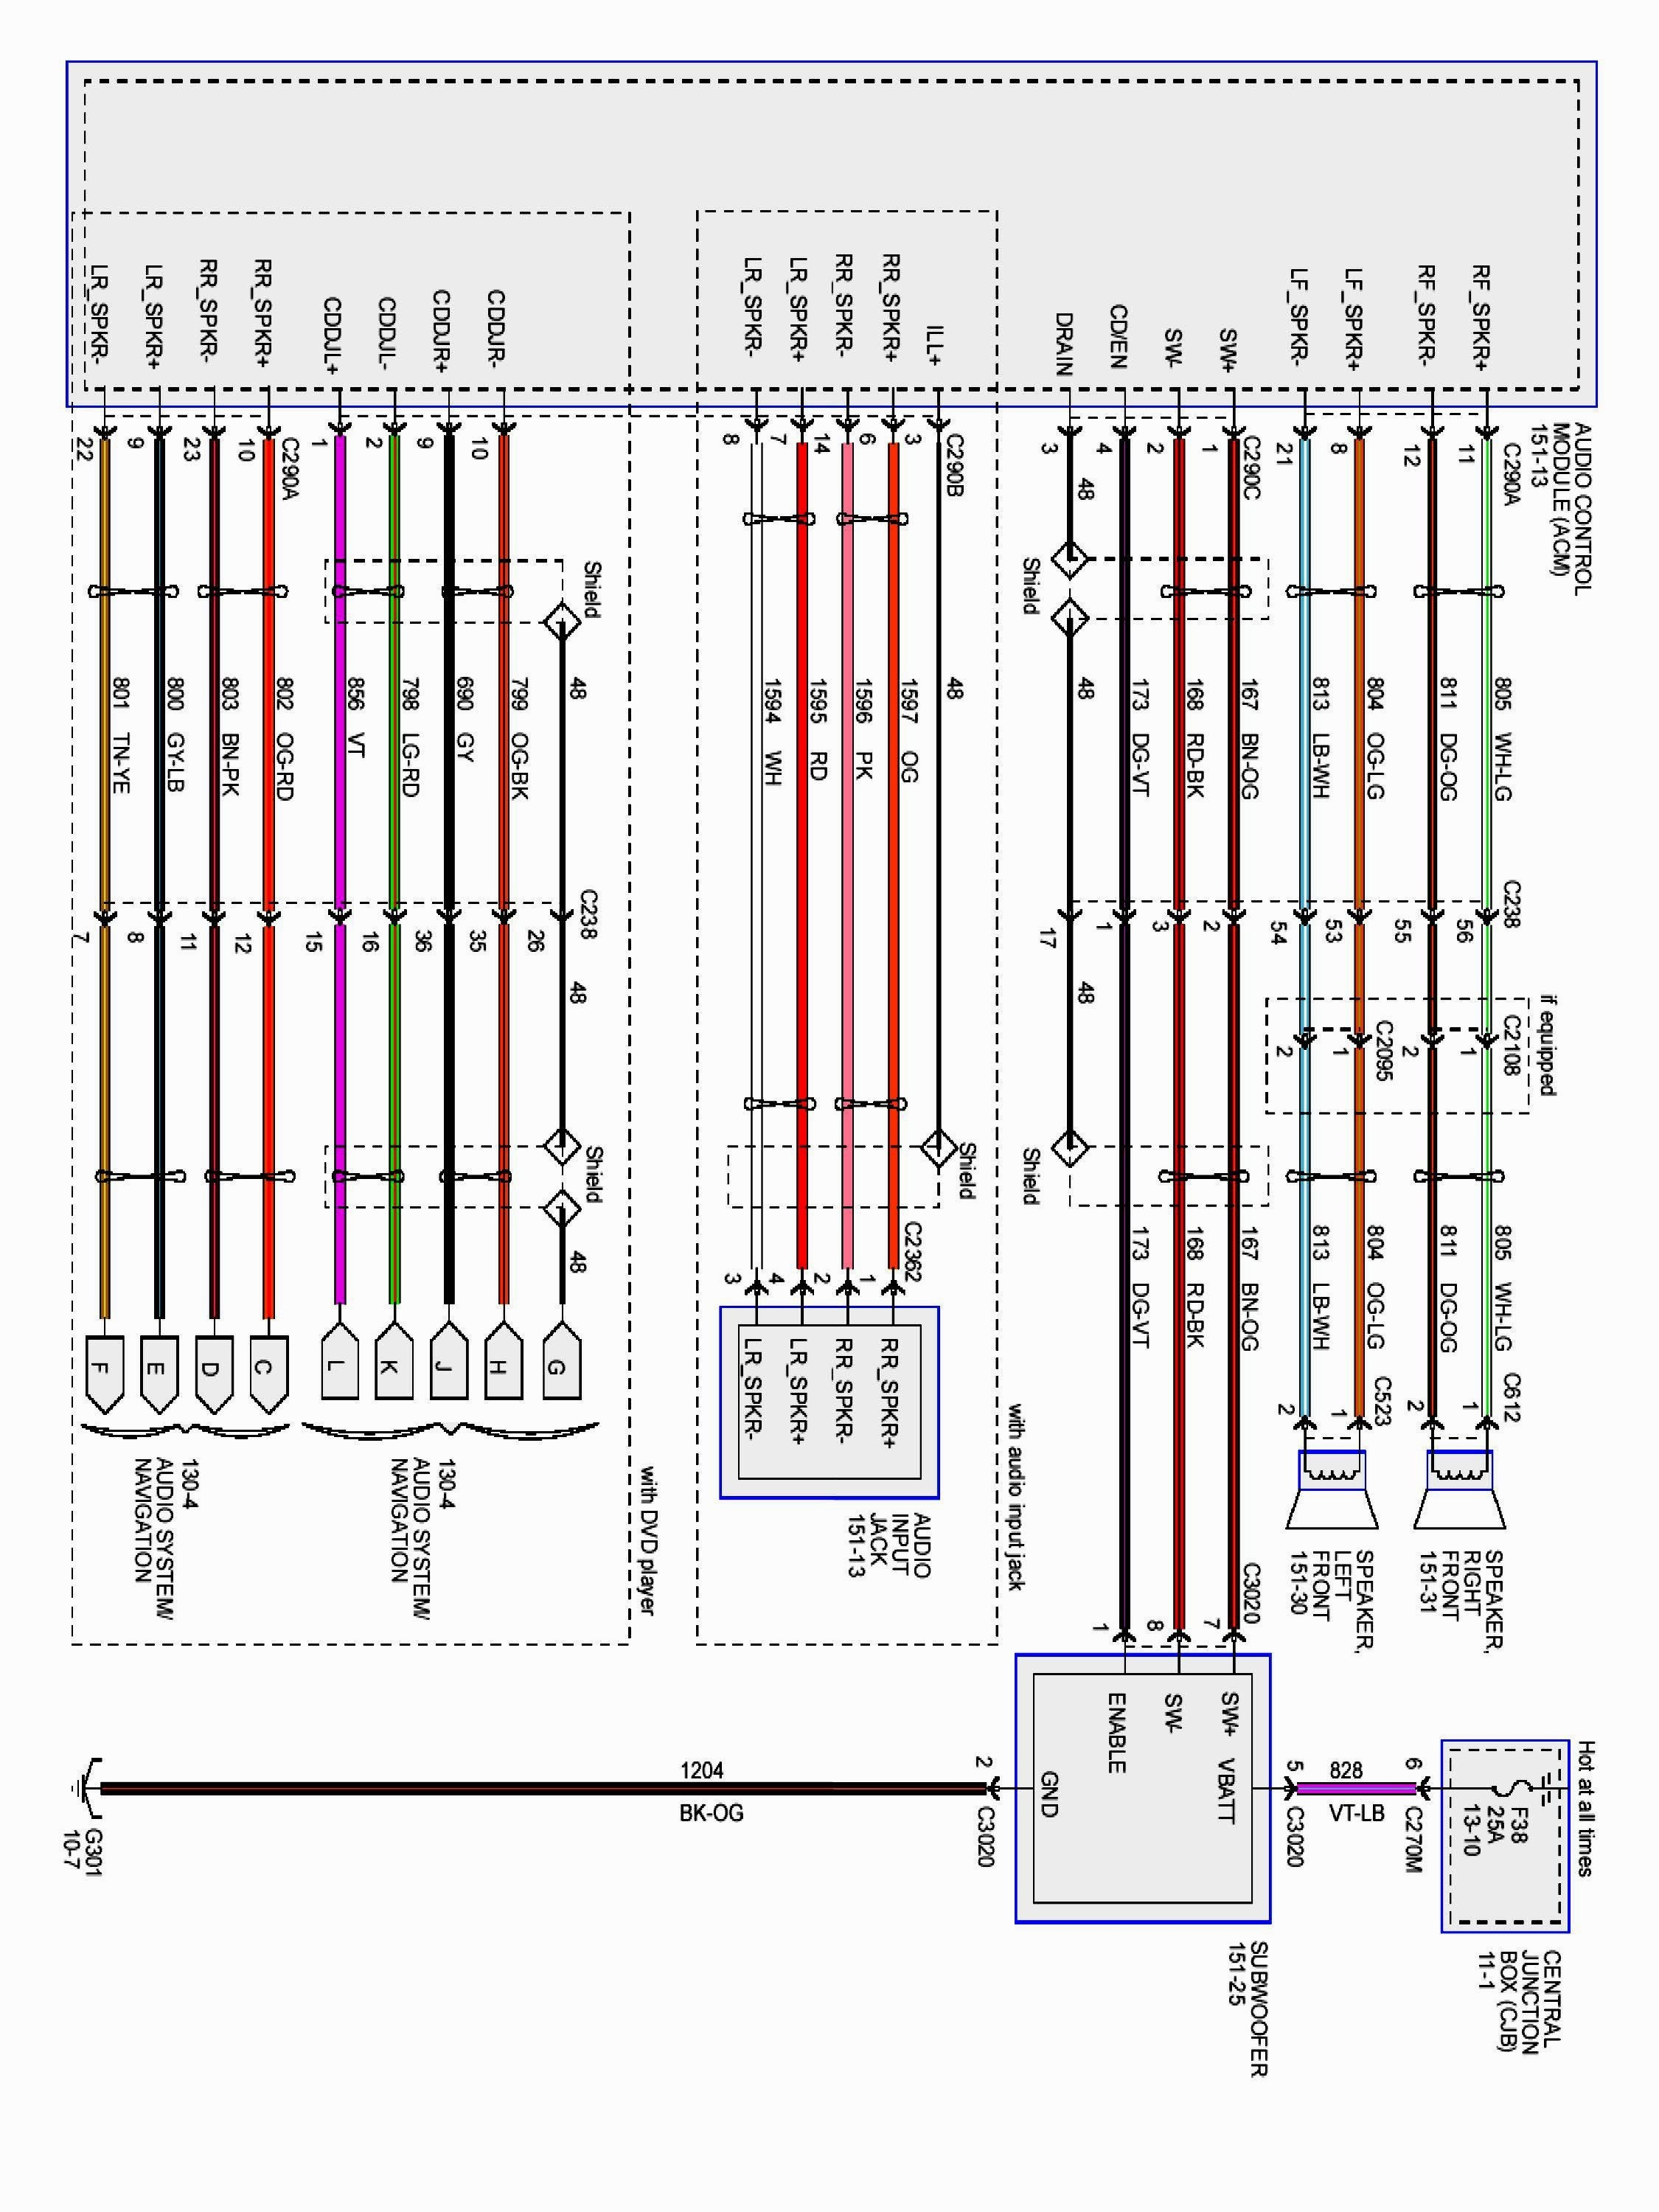 Wiring Diagram Alpine Car Stereo \u0026 Wiring Diagram For Alpine Car Rh Color Castles Com At Alpine Car Stereo Wiring Diagram Car Stereo Wiring Diagram Plete ...